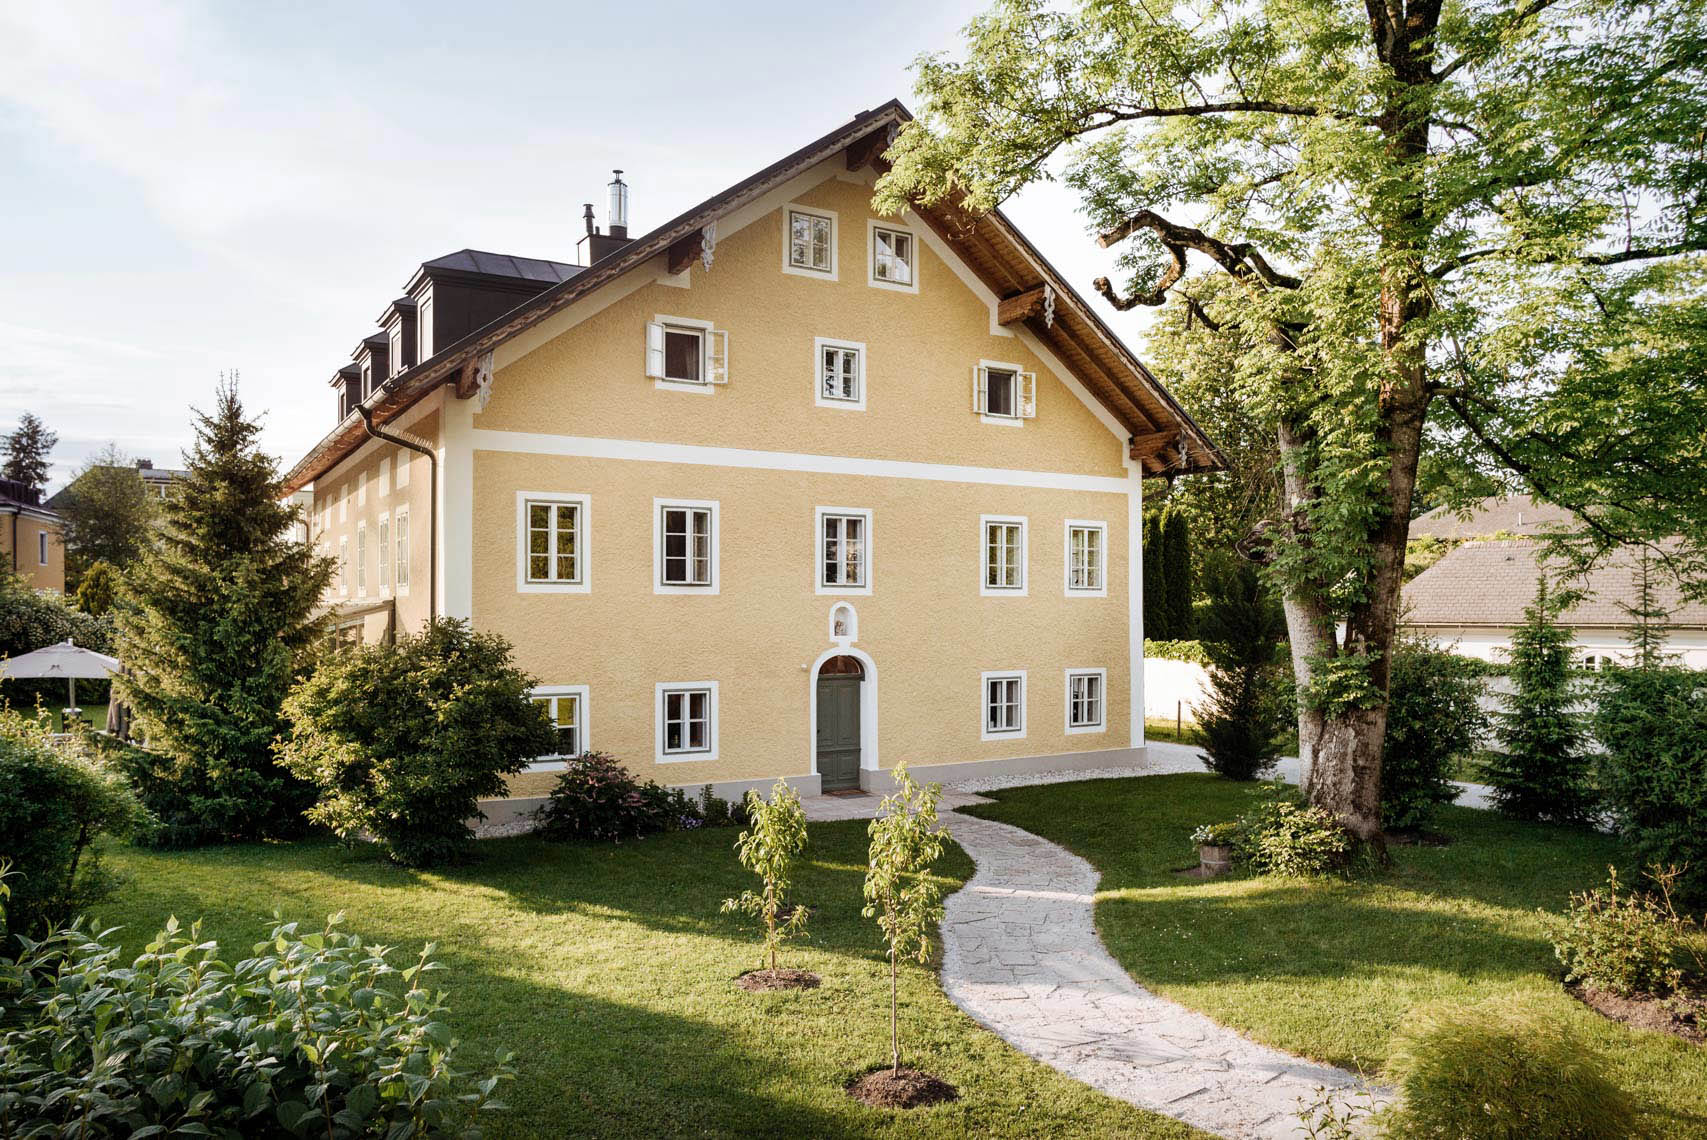 richard-schabetsberger-town-house-salzburg-031